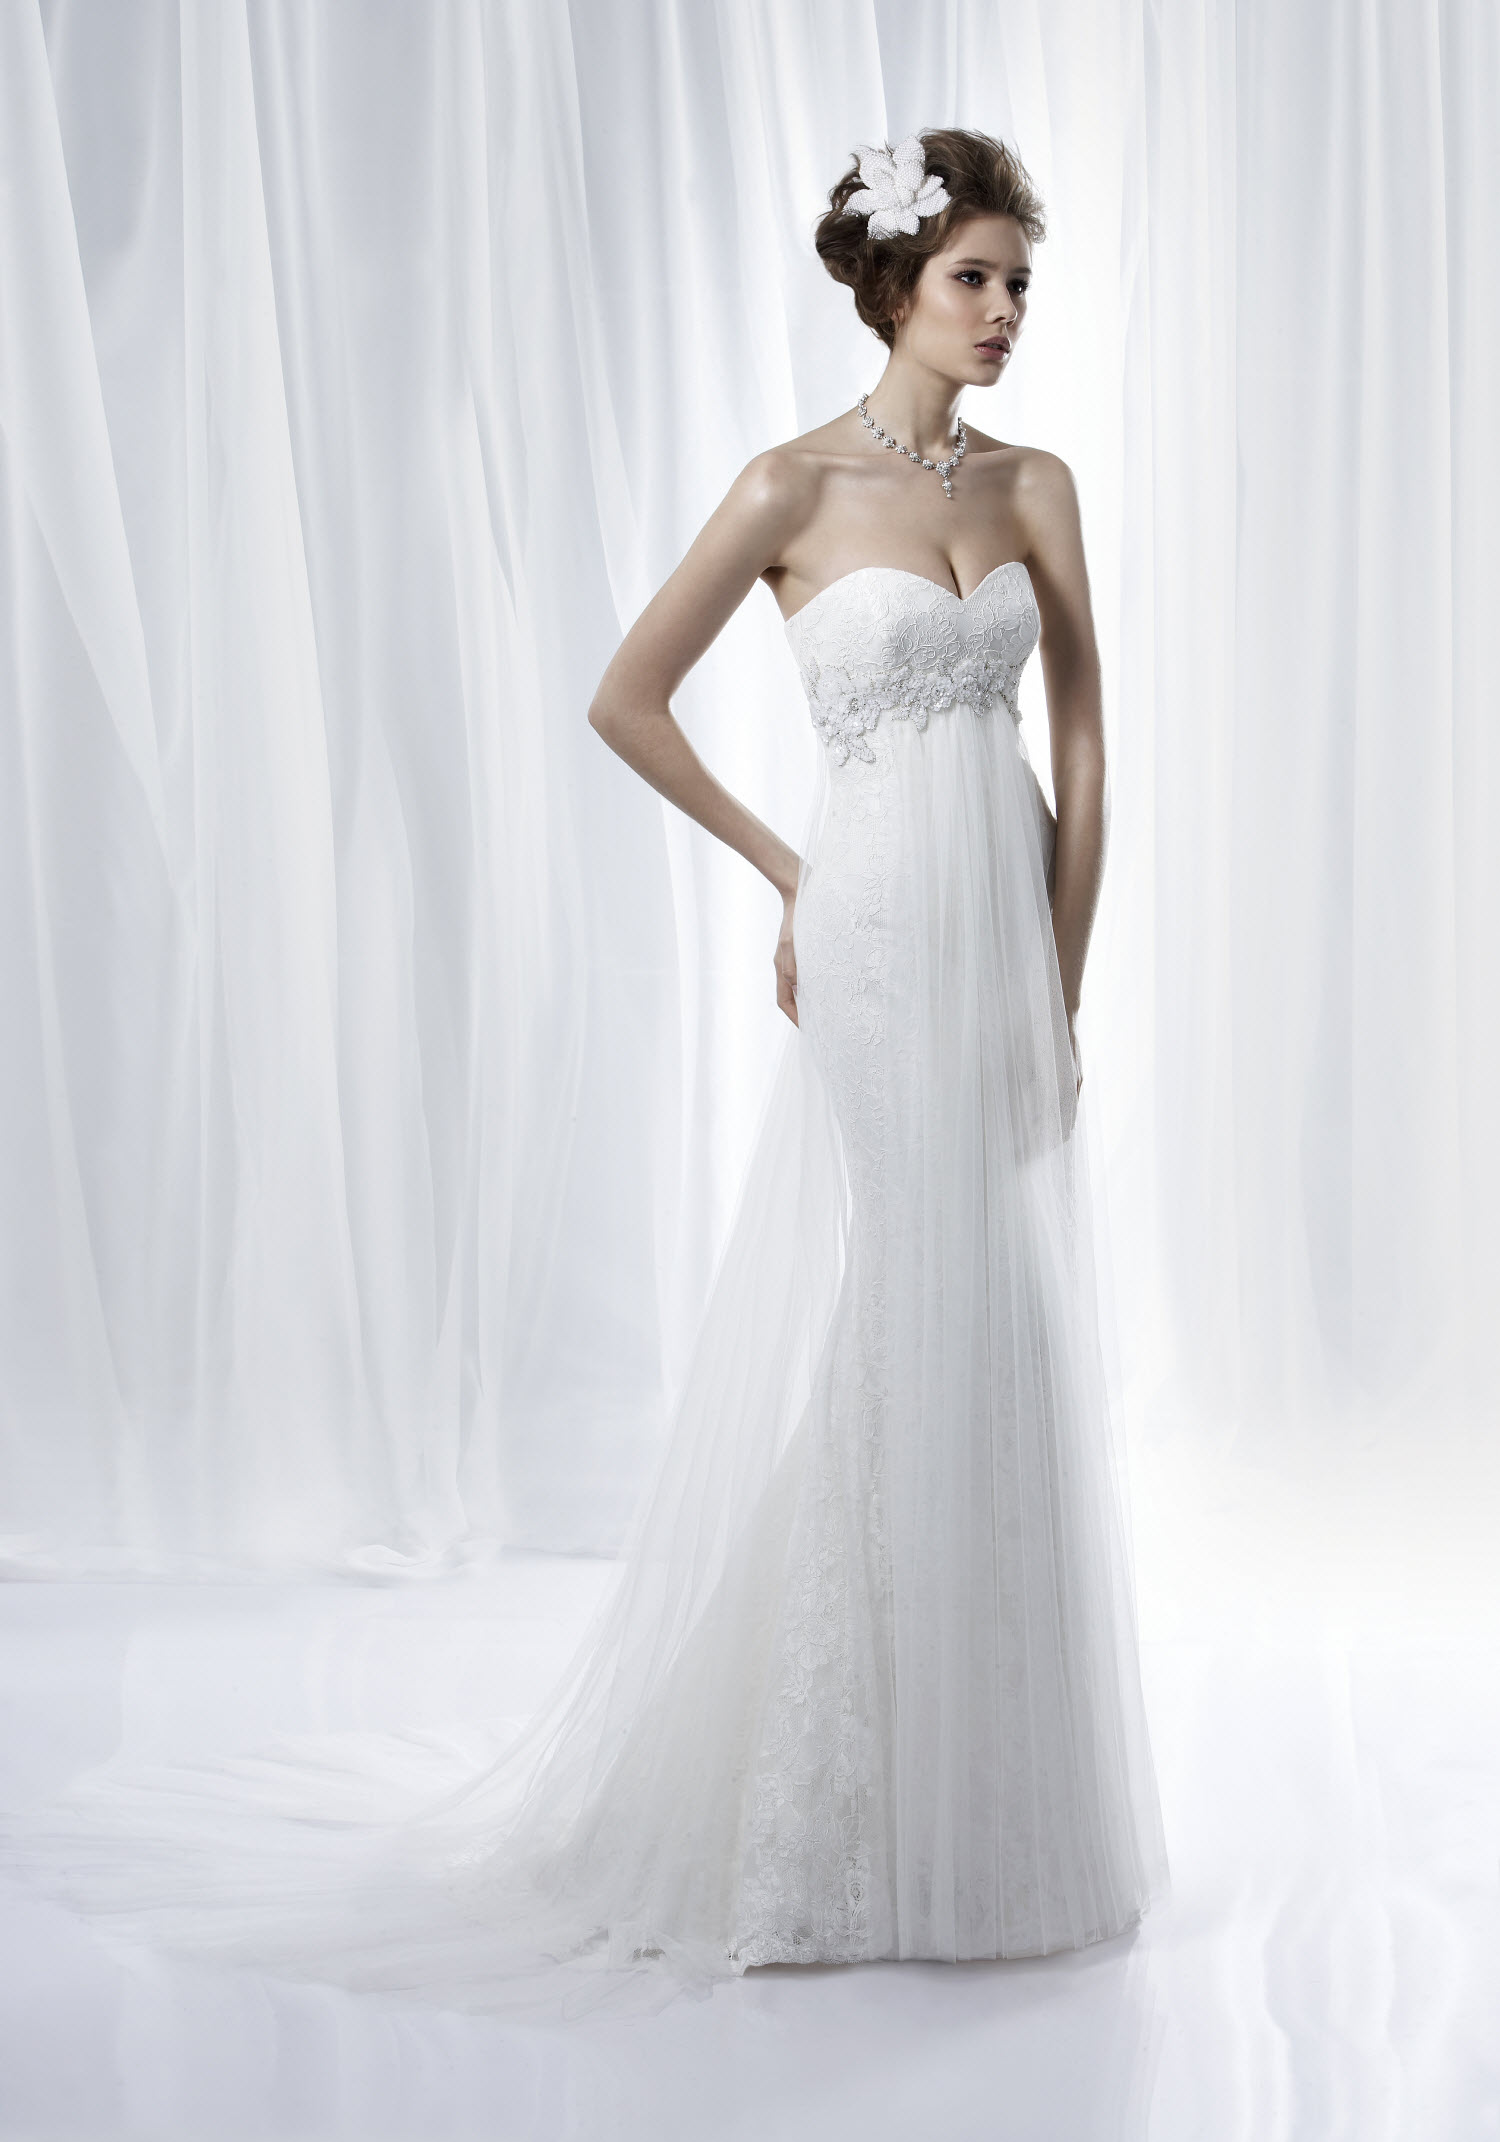 Ivory Sweetheart Neckline Sheath Column Wedding Dress With Lace Embellished B